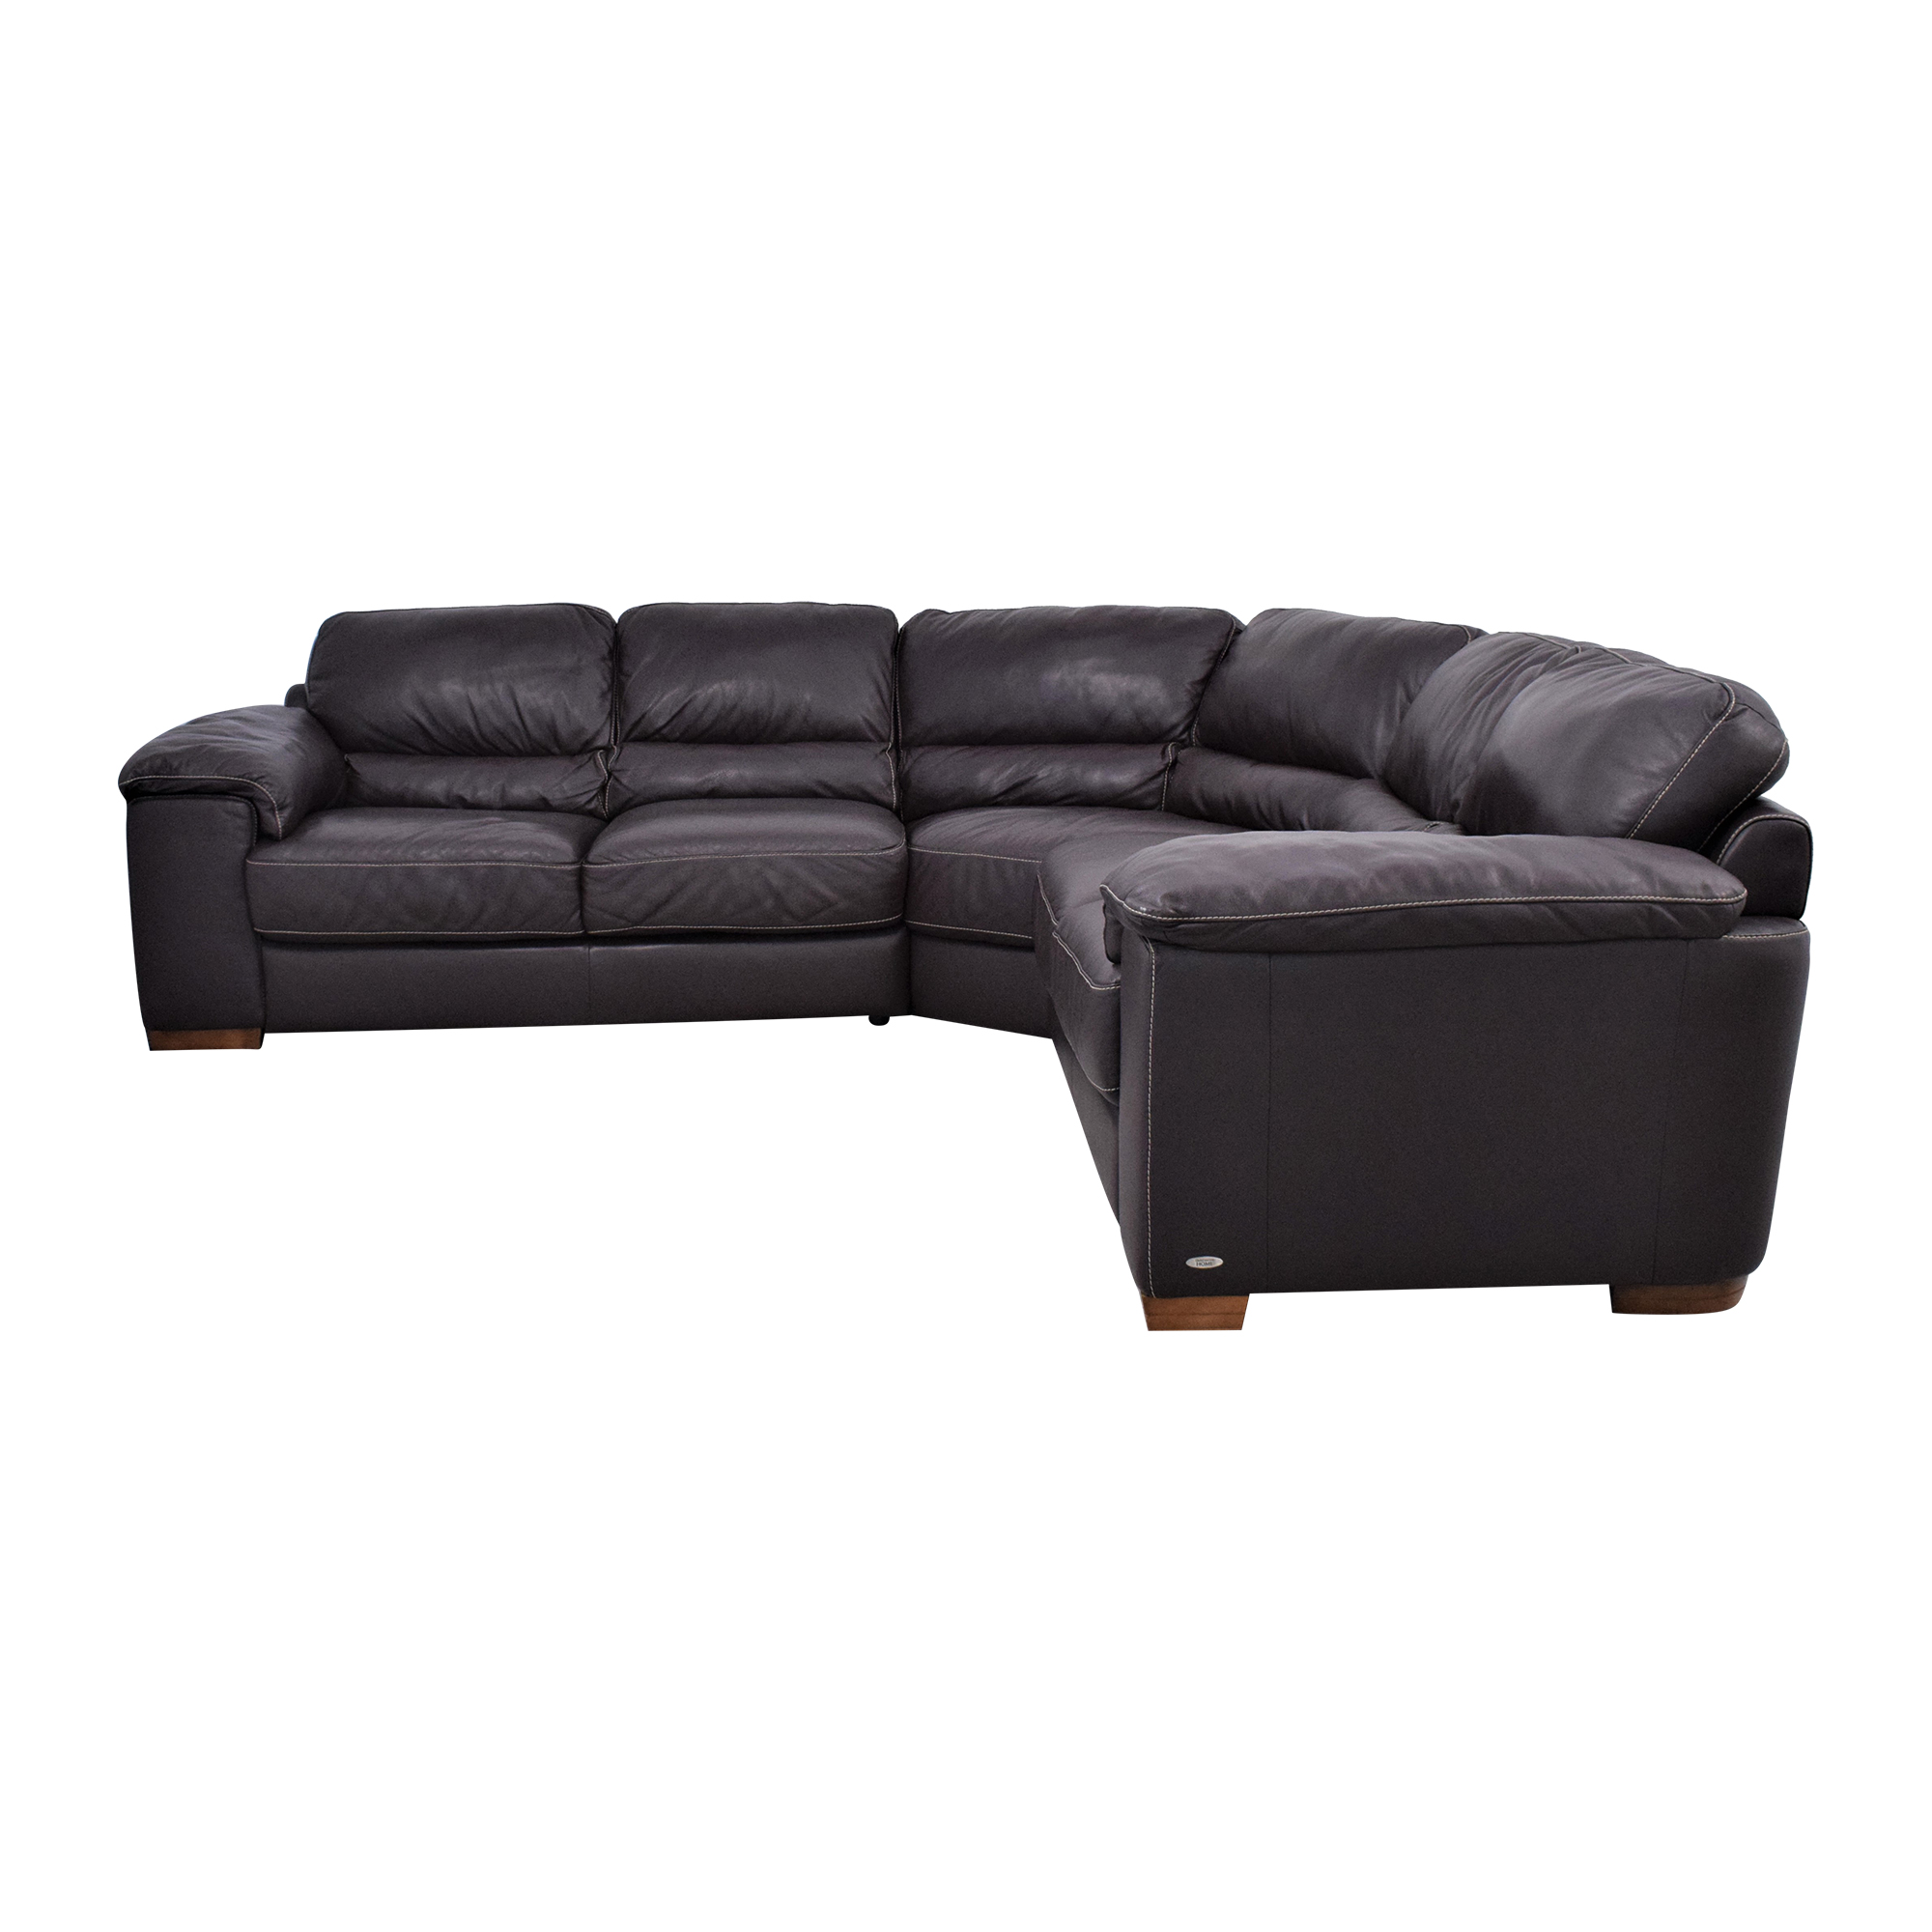 Cindy Crawford Home Maglie Leather Sectional Sofa / Sofas